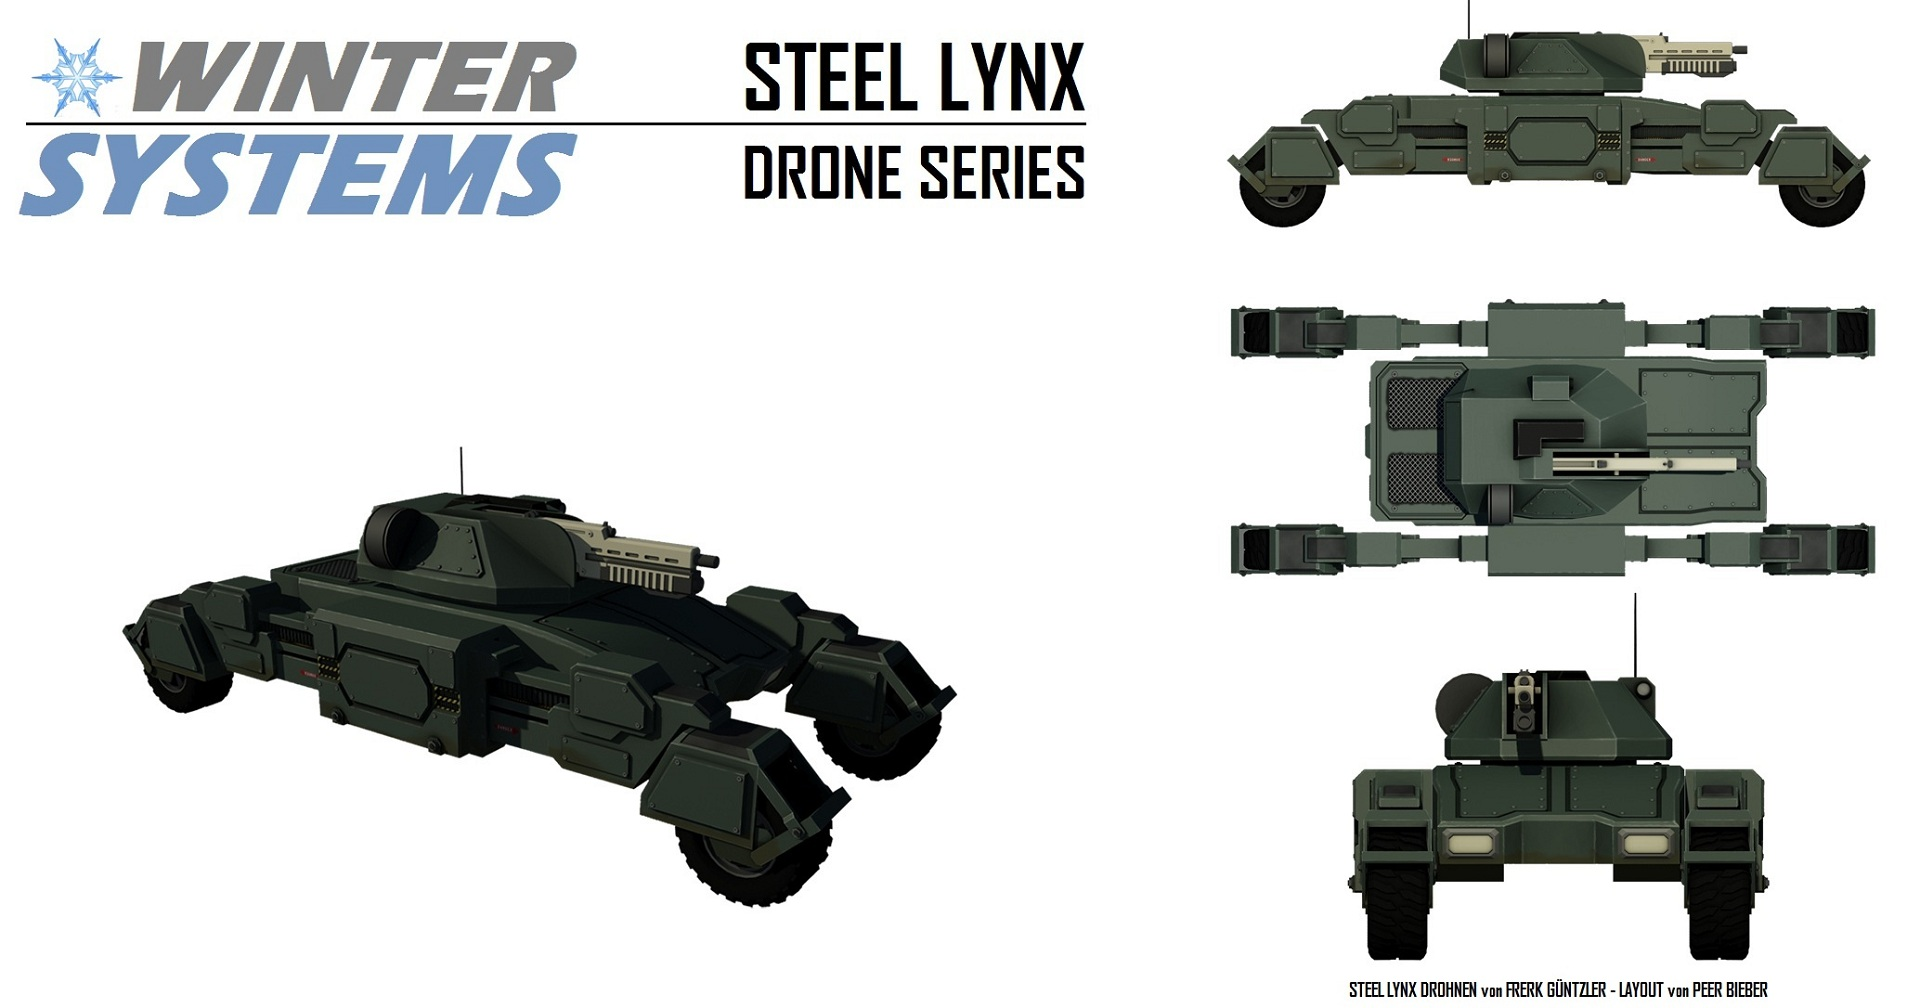 Winter systems steel lynx drone series shadowrun